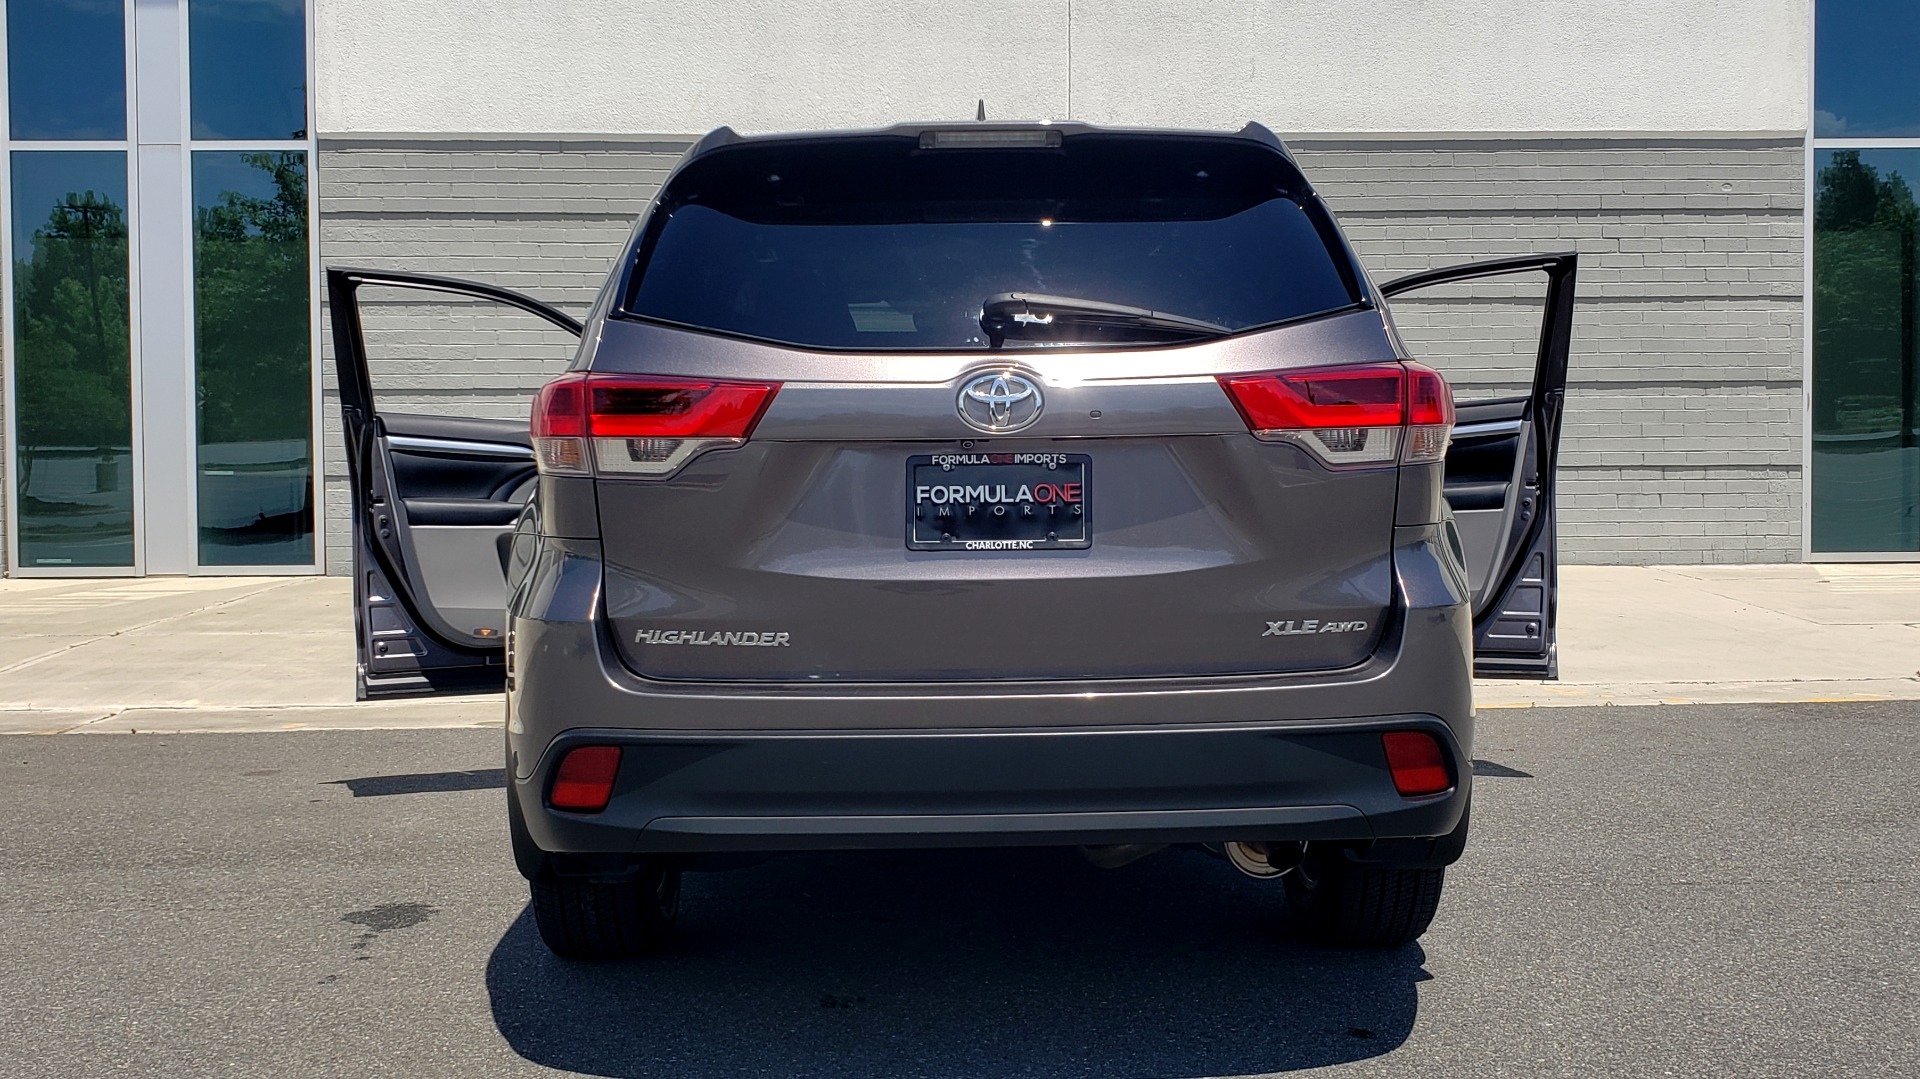 Used 2019 Toyota HIGHLANDER XLE / 3.5L V6 / AWD / LEATHER / 8-SPD AUTO / 1-OWNER for sale $37,500 at Formula Imports in Charlotte NC 28227 27